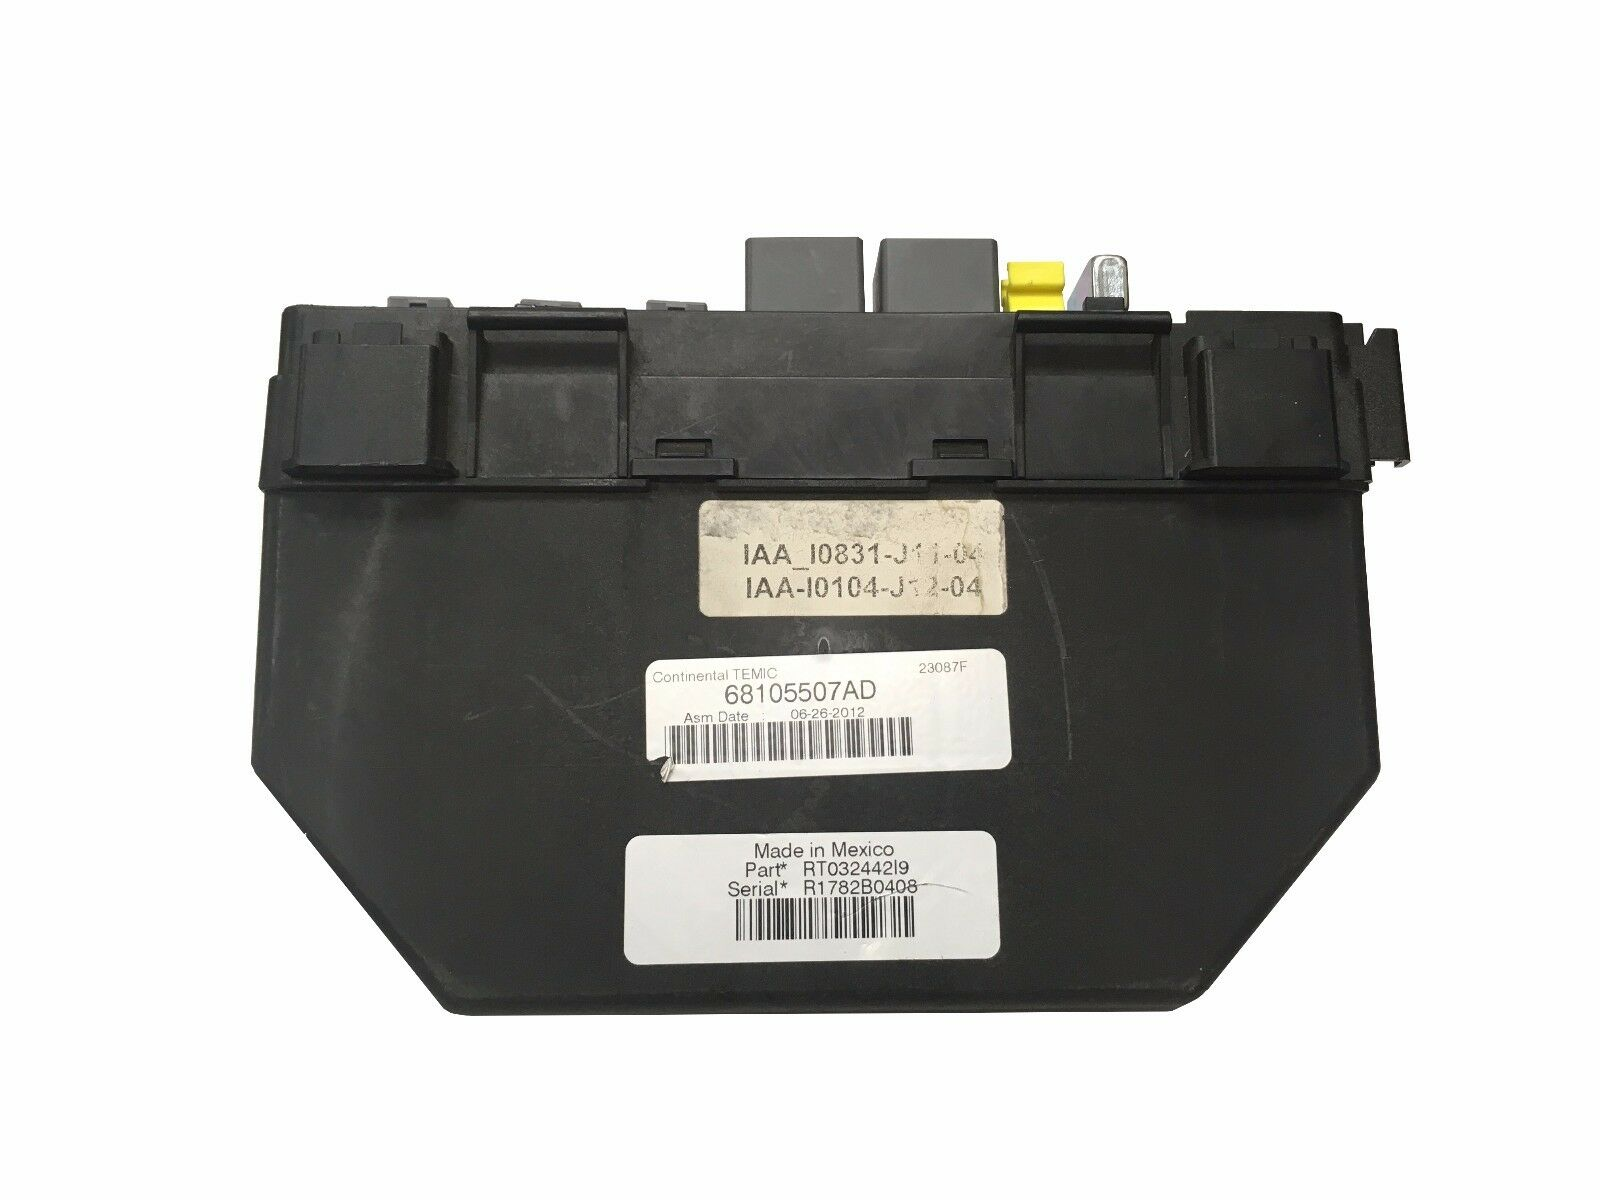 Used Ram 5500 Computers And Cruise Control Parts For Sale 1991 Dodge Durango Fuse Box Repair Kit 4 1500 2500 3500 Tipm 2011 2013